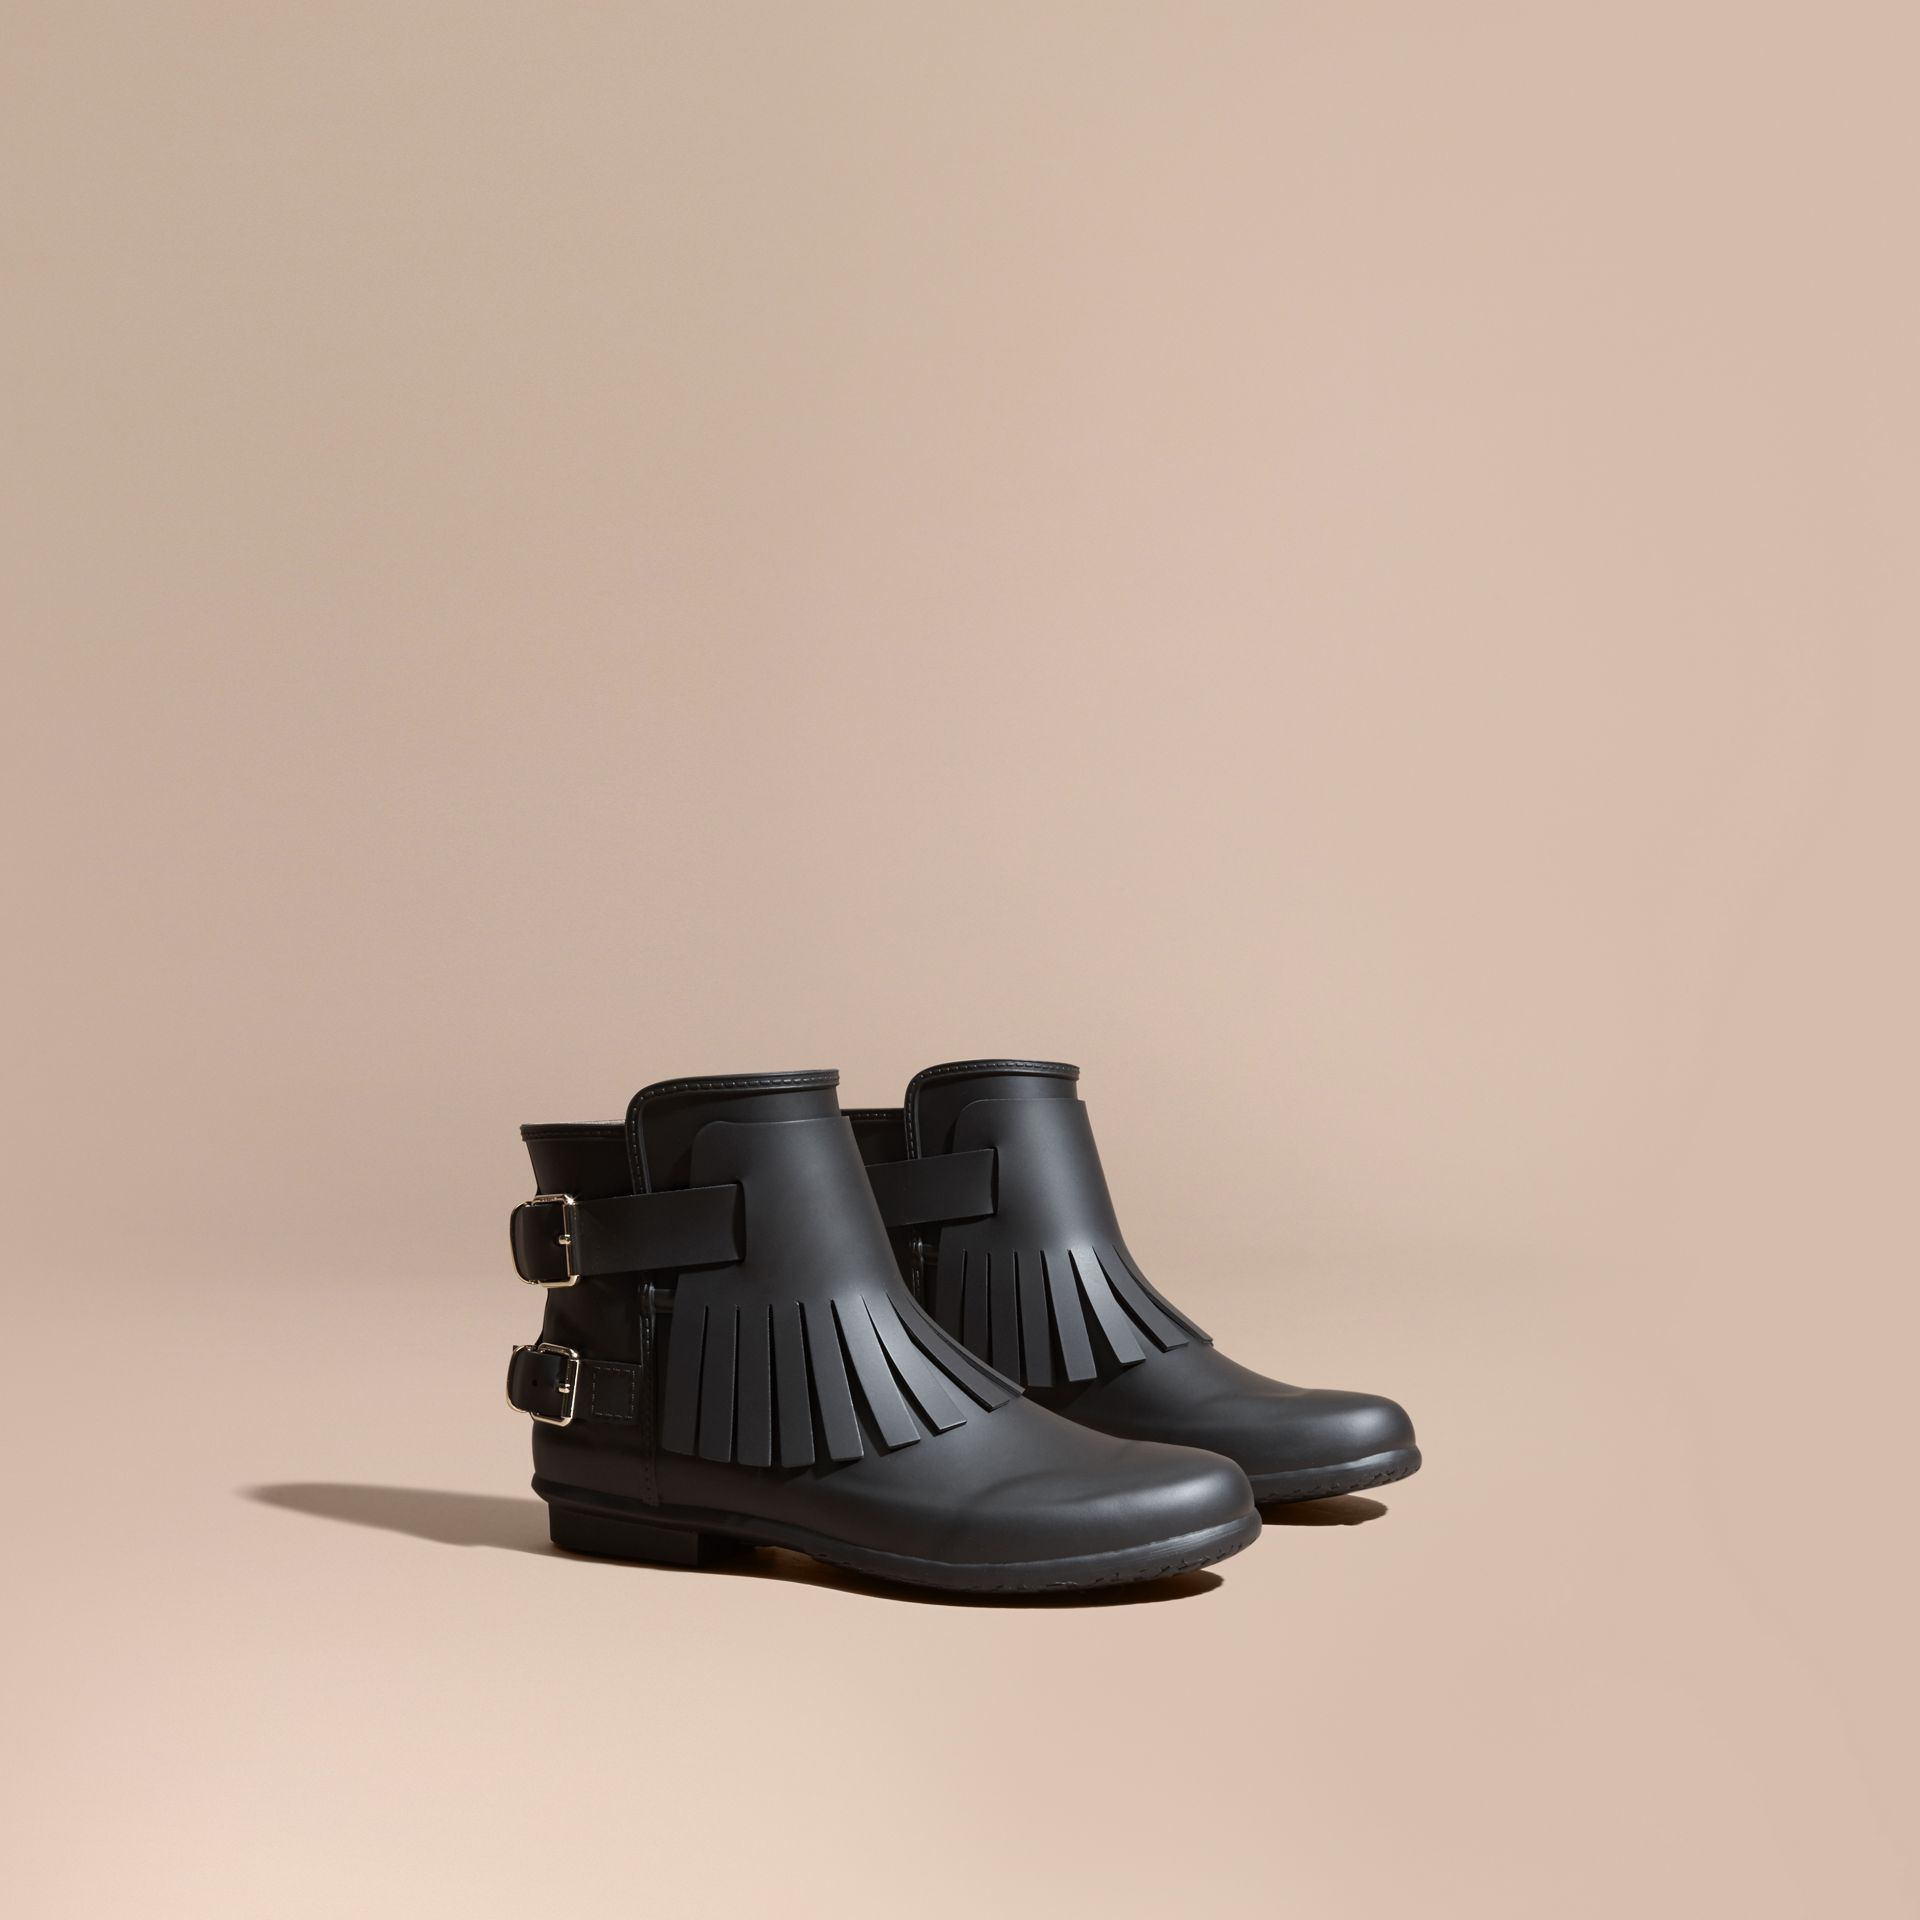 Noir Bottines de pluie à franges - photo de la galerie 1